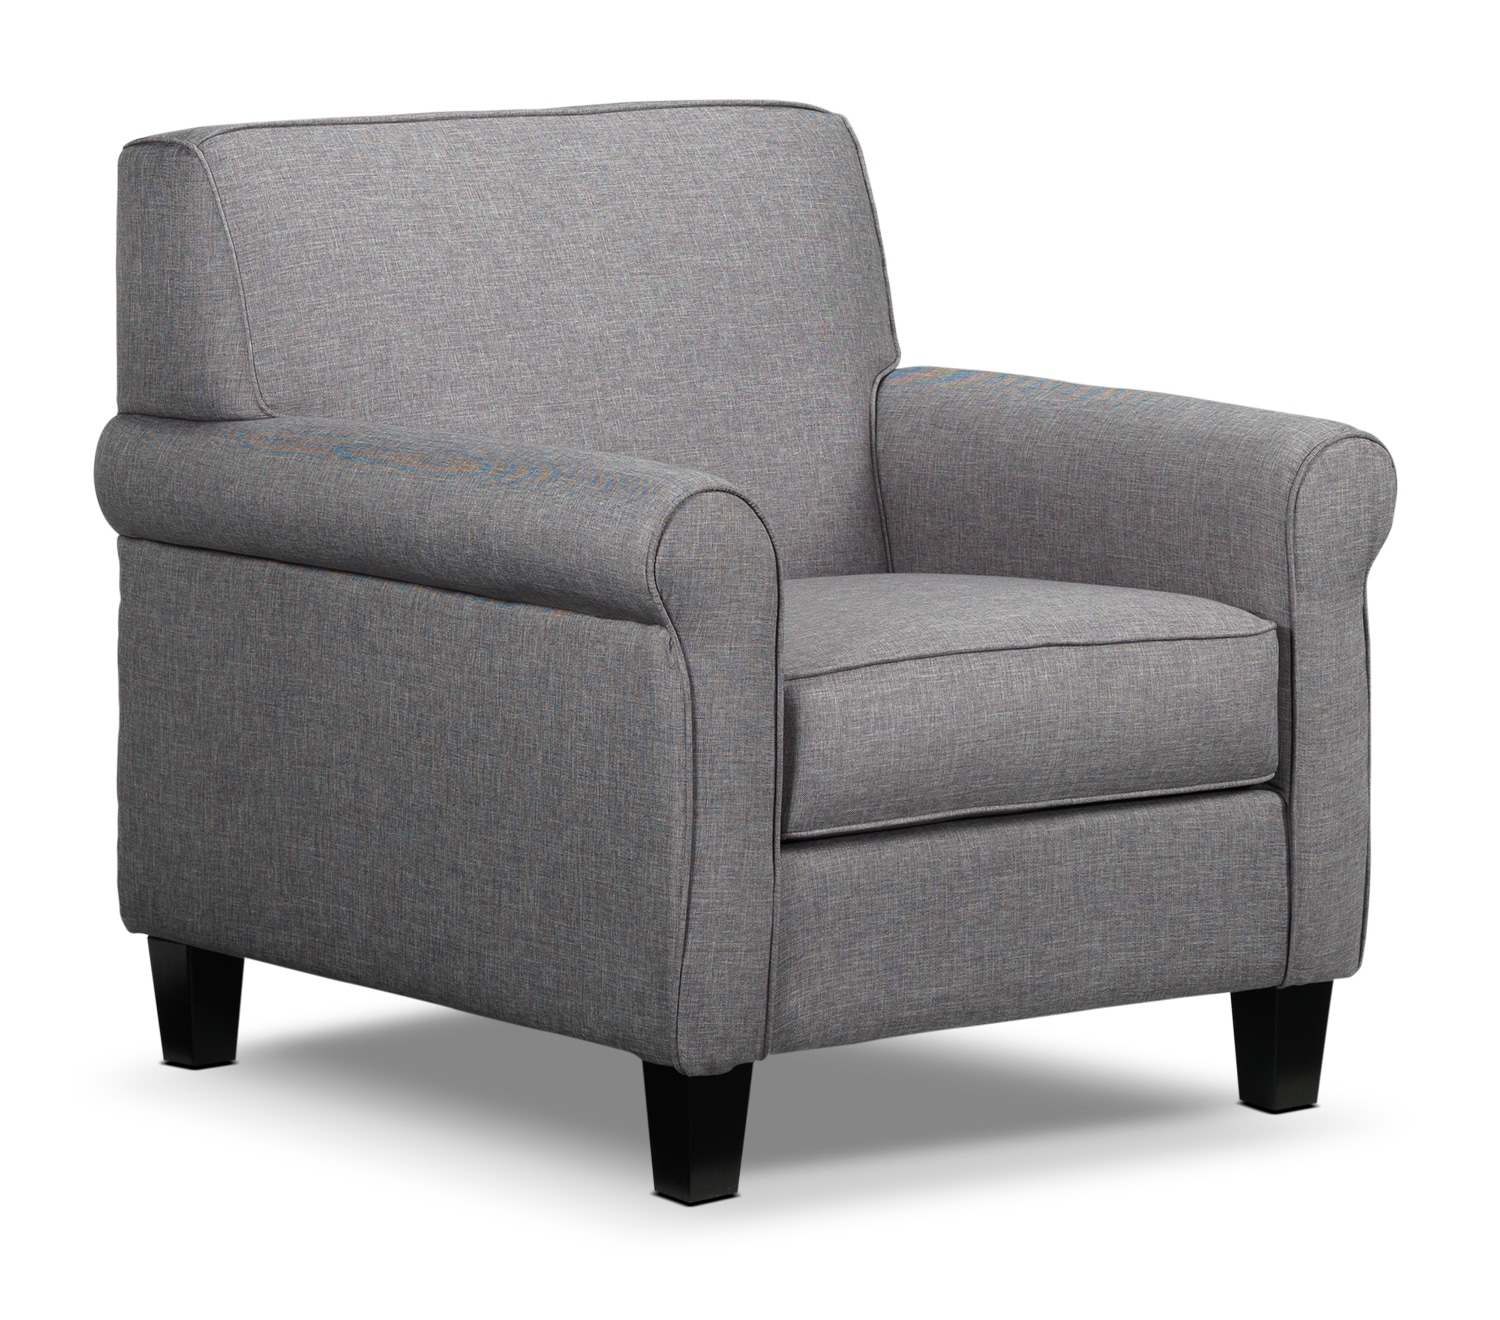 Living Room Furniture - Ariel Chair - Silver-Grey